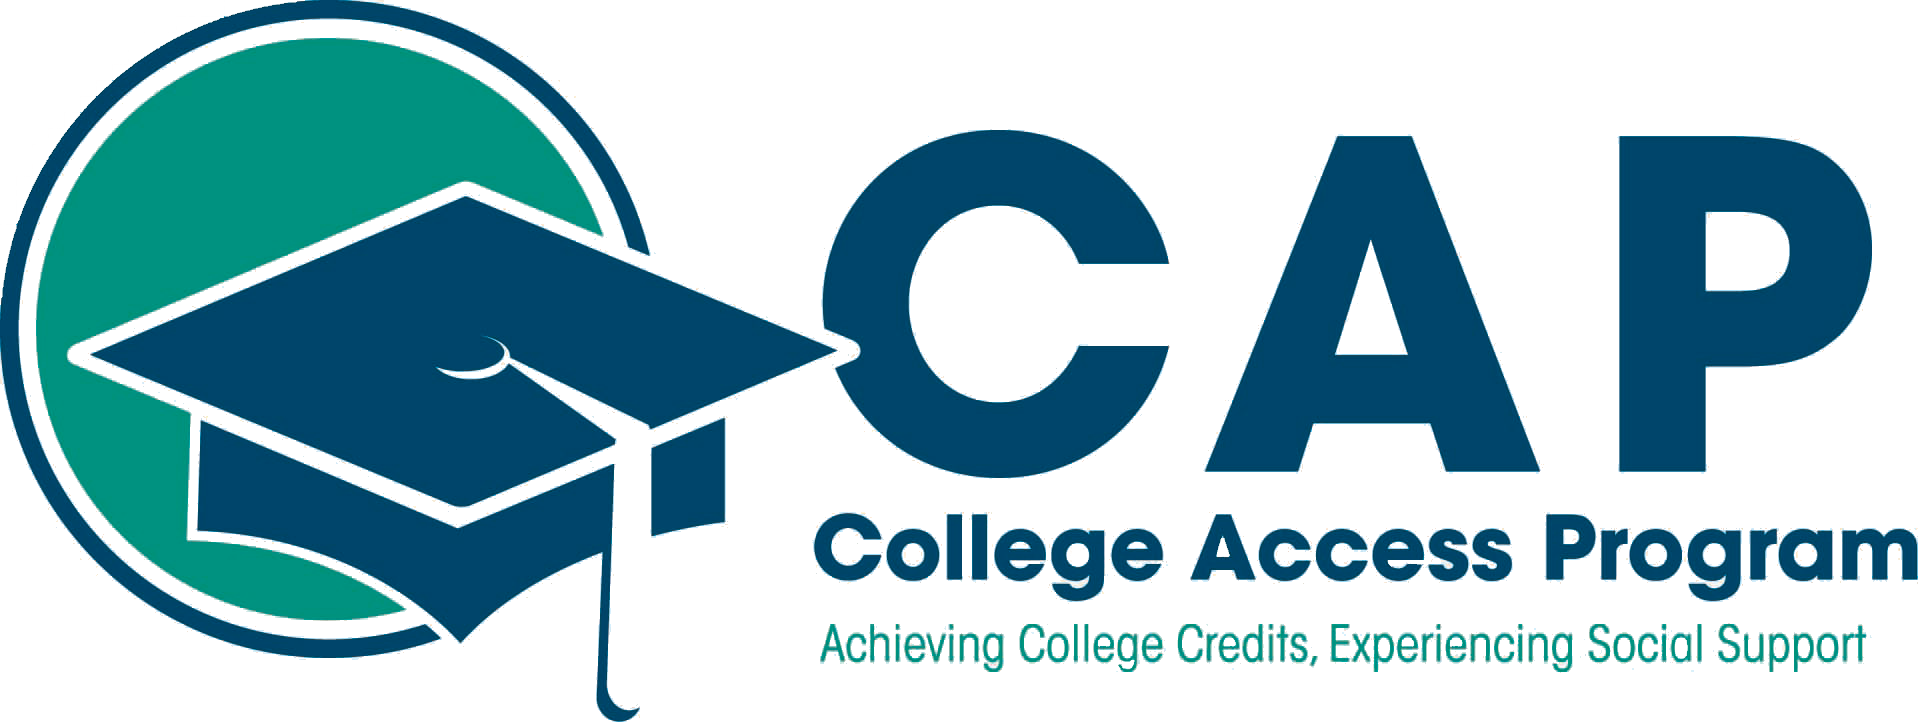 College Access Programs Logo